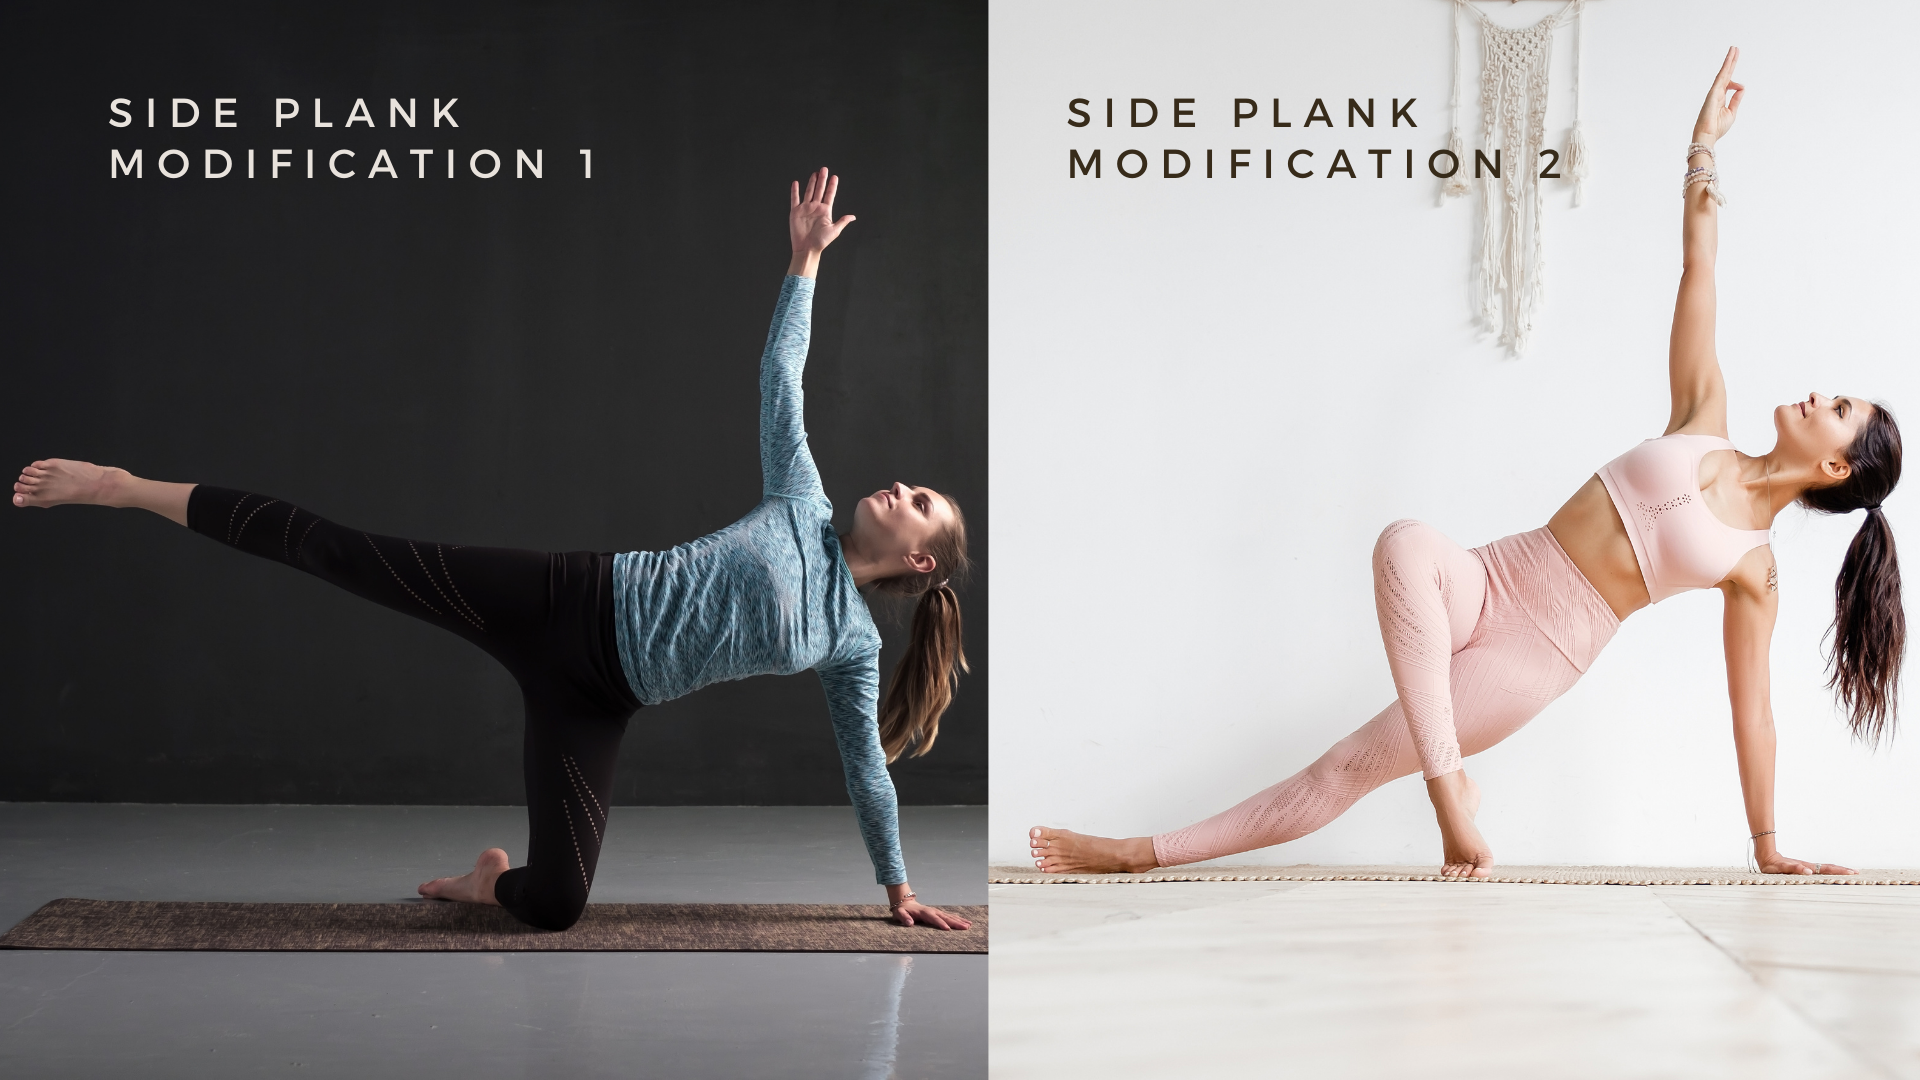 beginner yoga student demonstrating how to practice modifications of vasisthasana (also known as side plank pose)